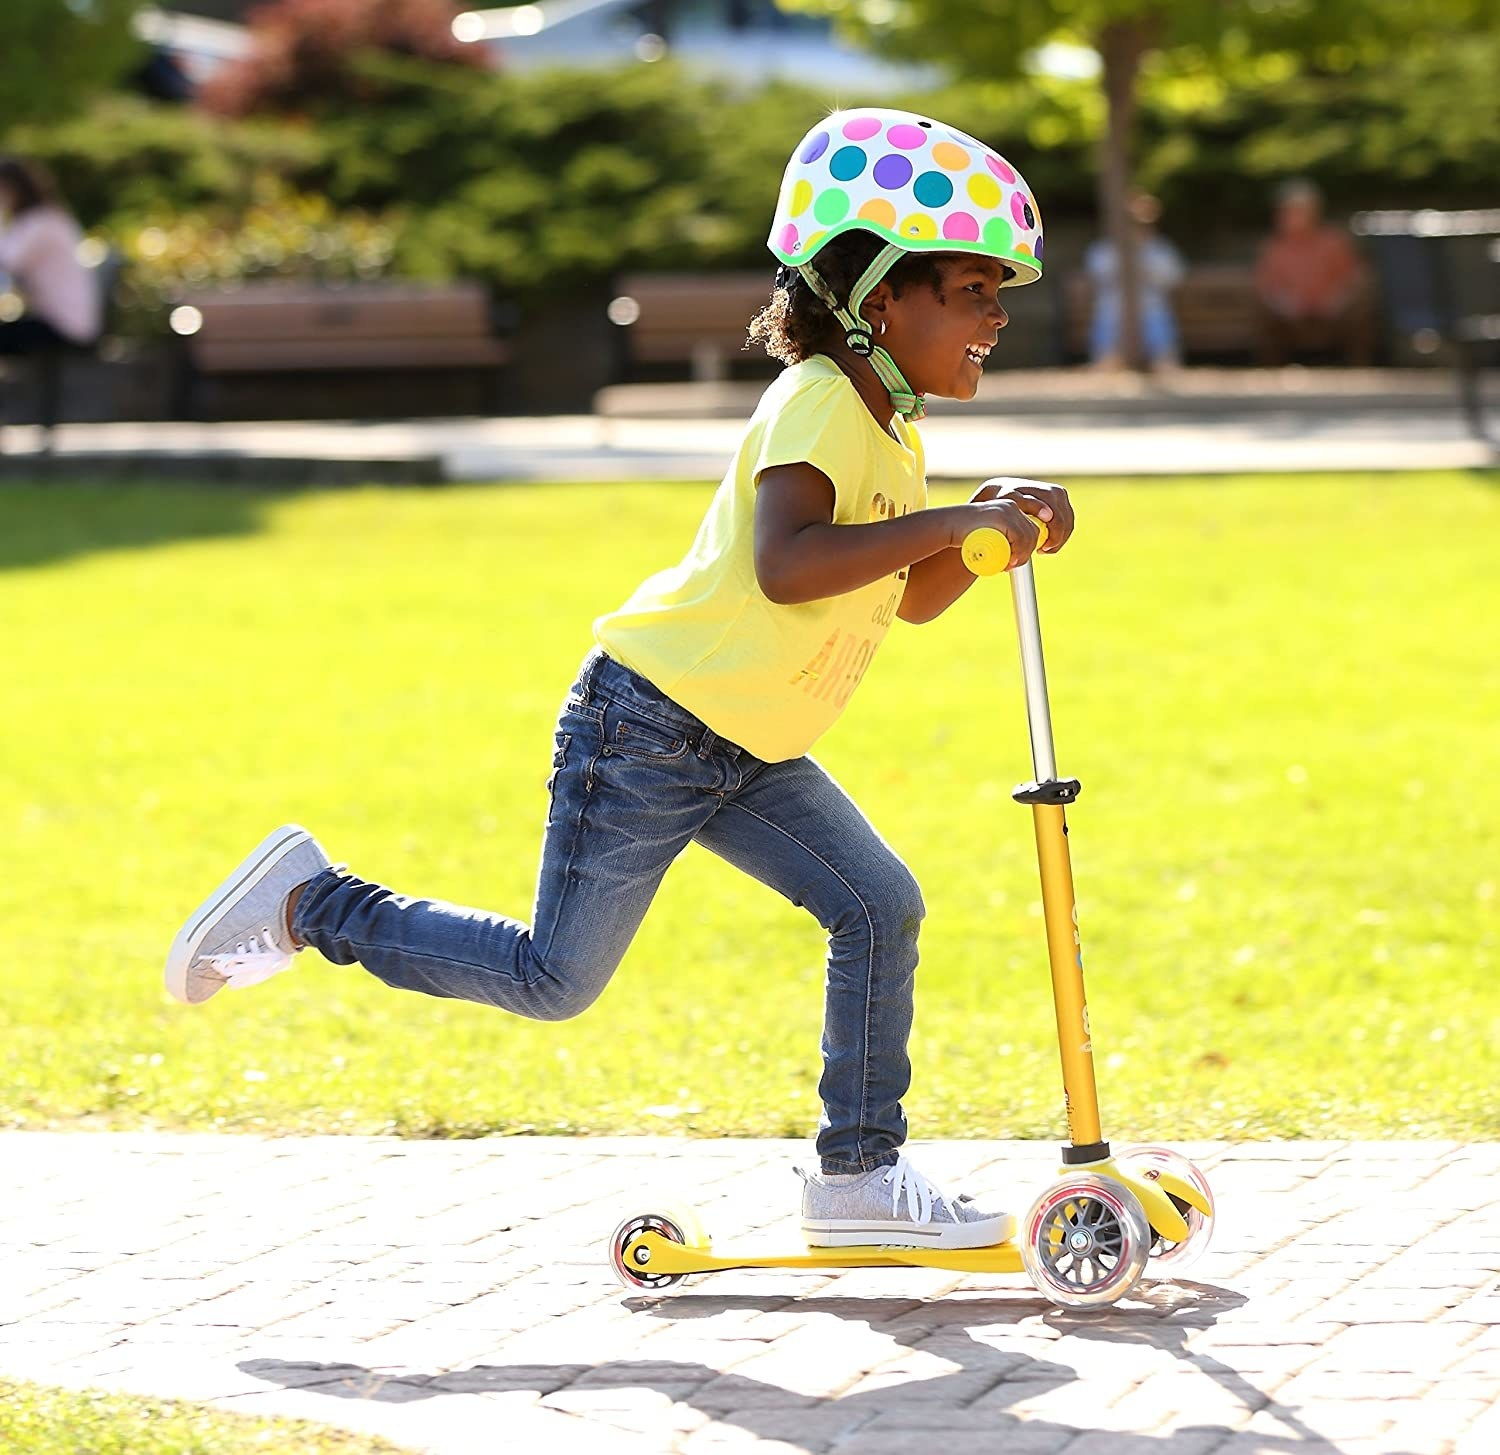 A child model riding a three-wheel scooter outdoors while wearing a helmet